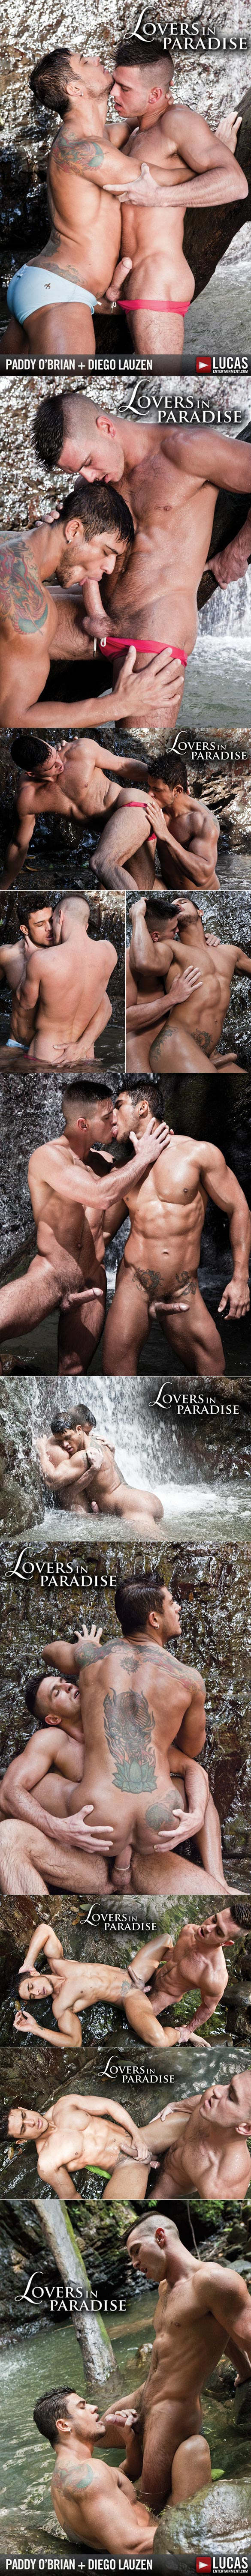 """Lucas Entertainment: Paddy O'Brian pounds Diego Lauzen in """"Lovers in Paradise"""""""